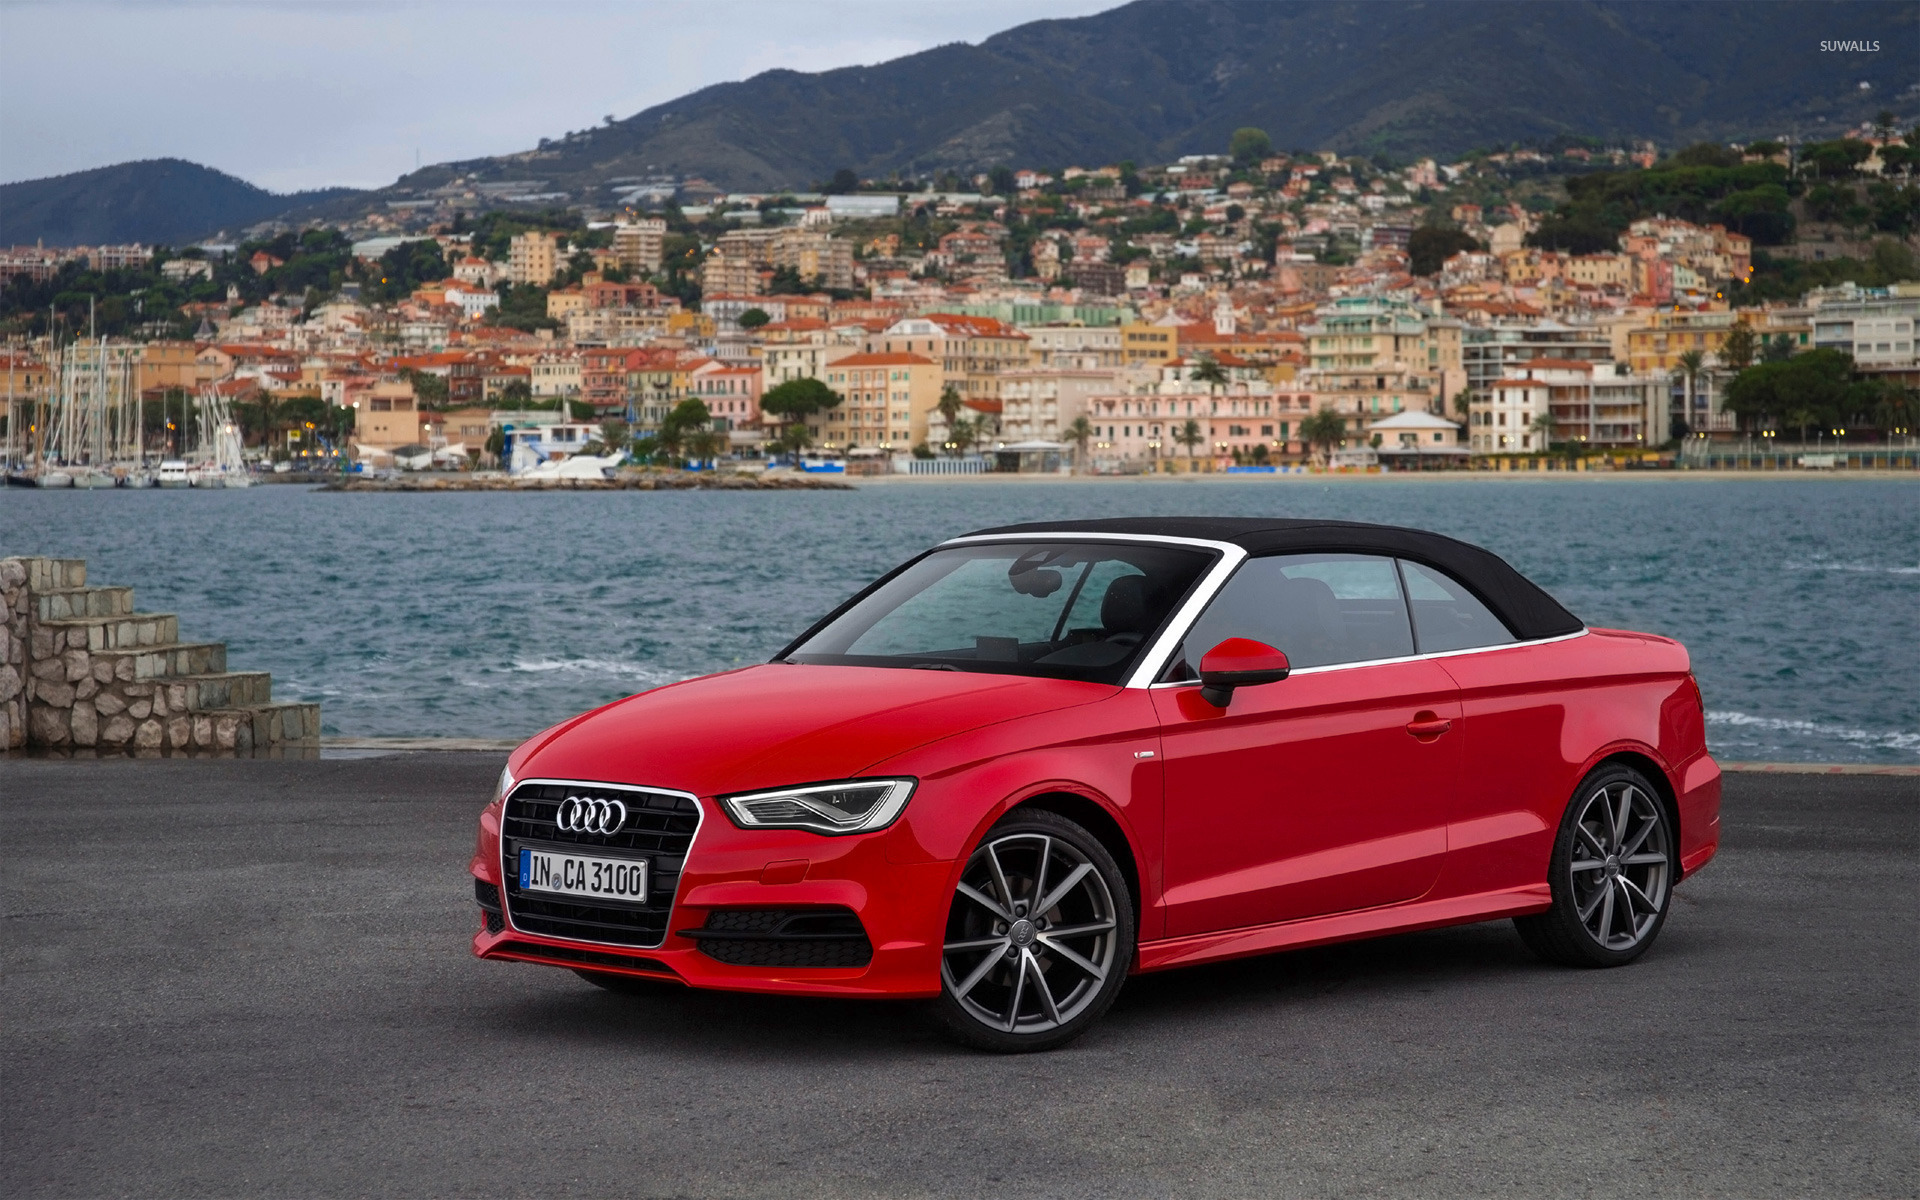 2014 Audi A3 Cabriolet Wallpaper Car Wallpapers 25658